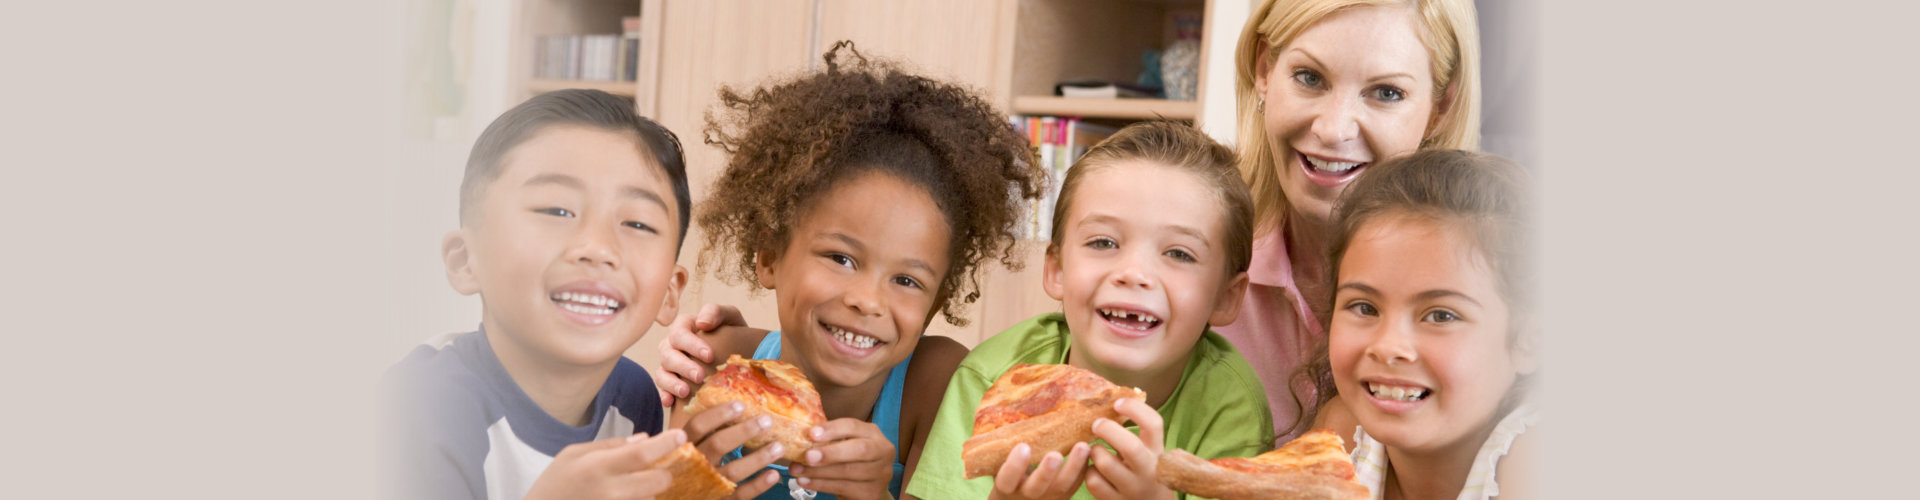 kids smiling while holding pizza